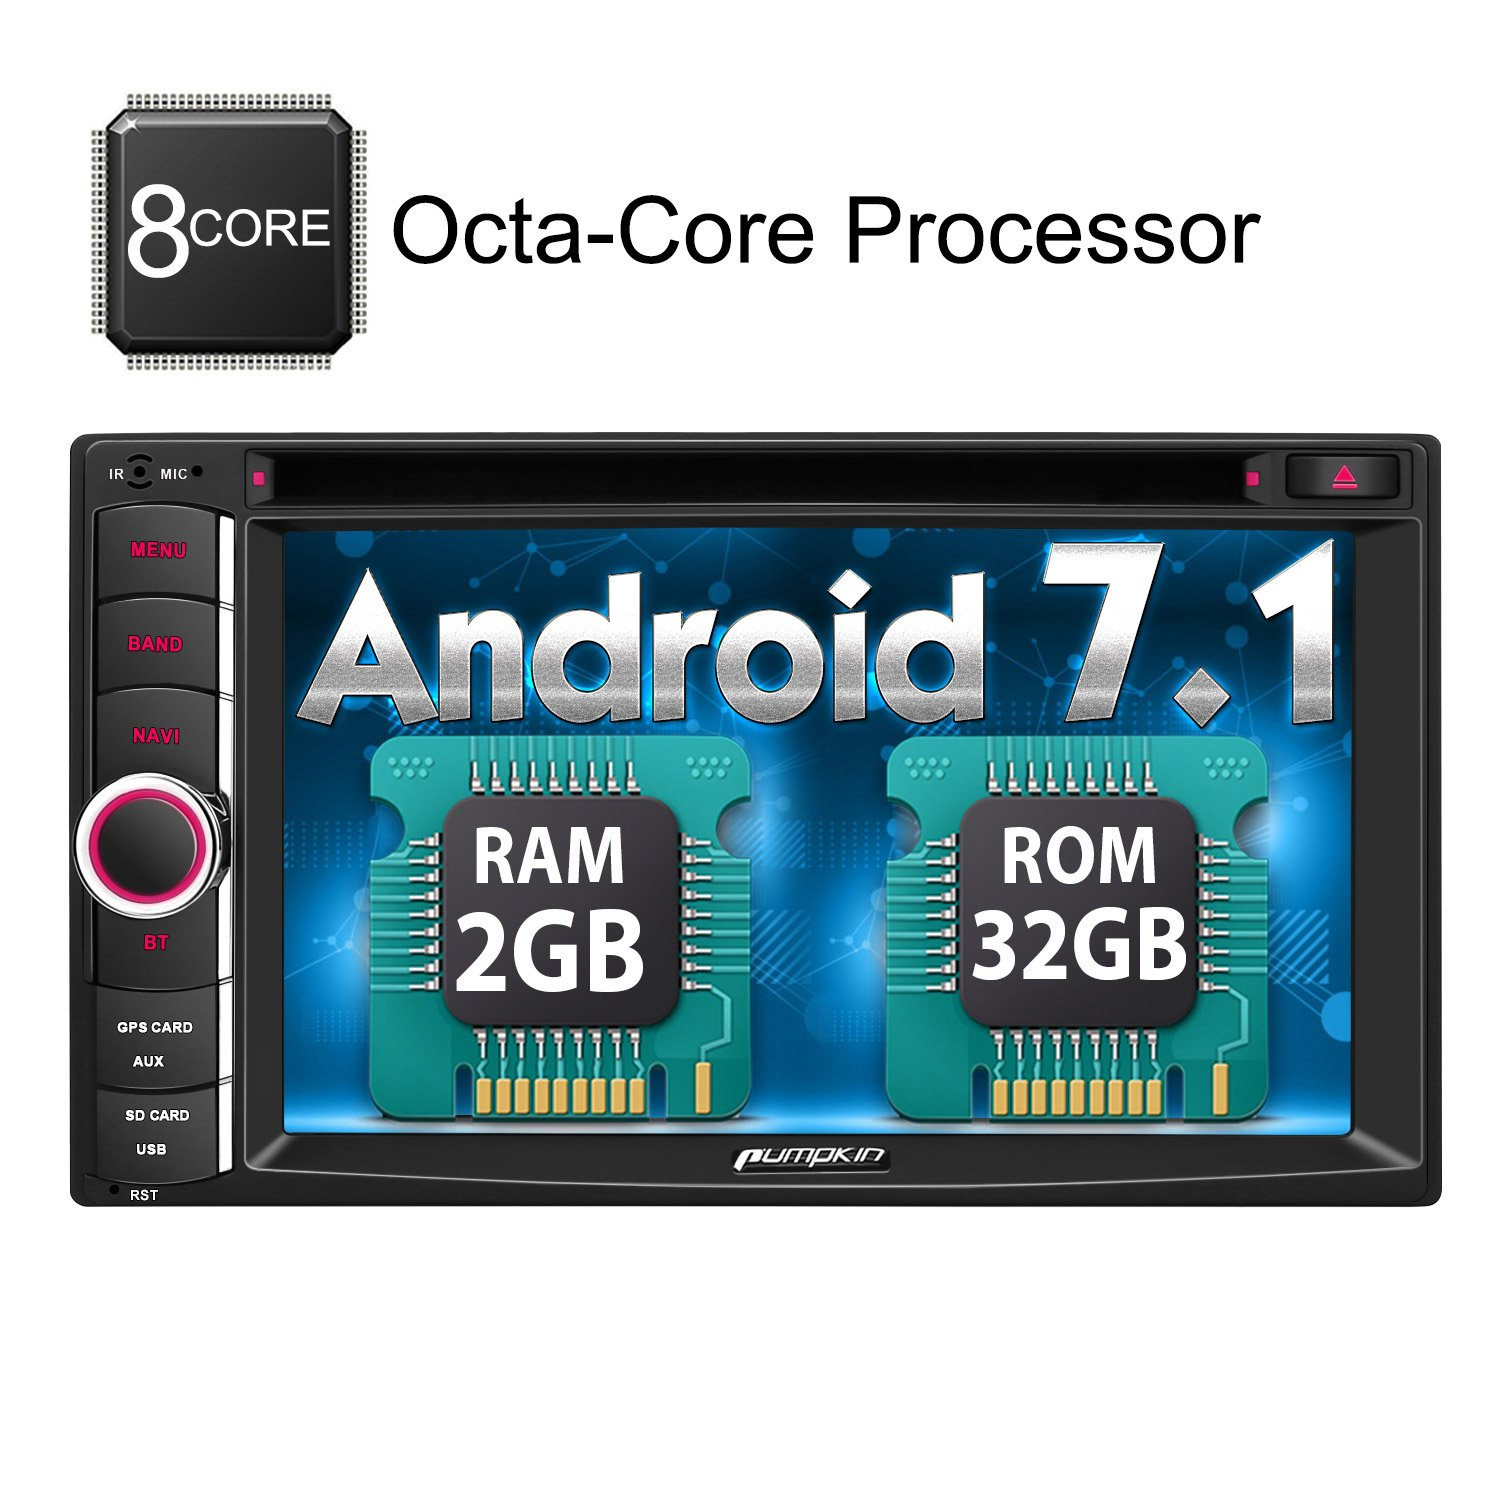 Android 7.1 Octa Core 32GB+2GB Double Din Car Stereo Radio with Bluetooth GPS Navigation DVD CD Player 6.2 inch Touch Screen - Support WIFI, MirrorLink, AUX, Backup Camera, USB SD, Dash Cam